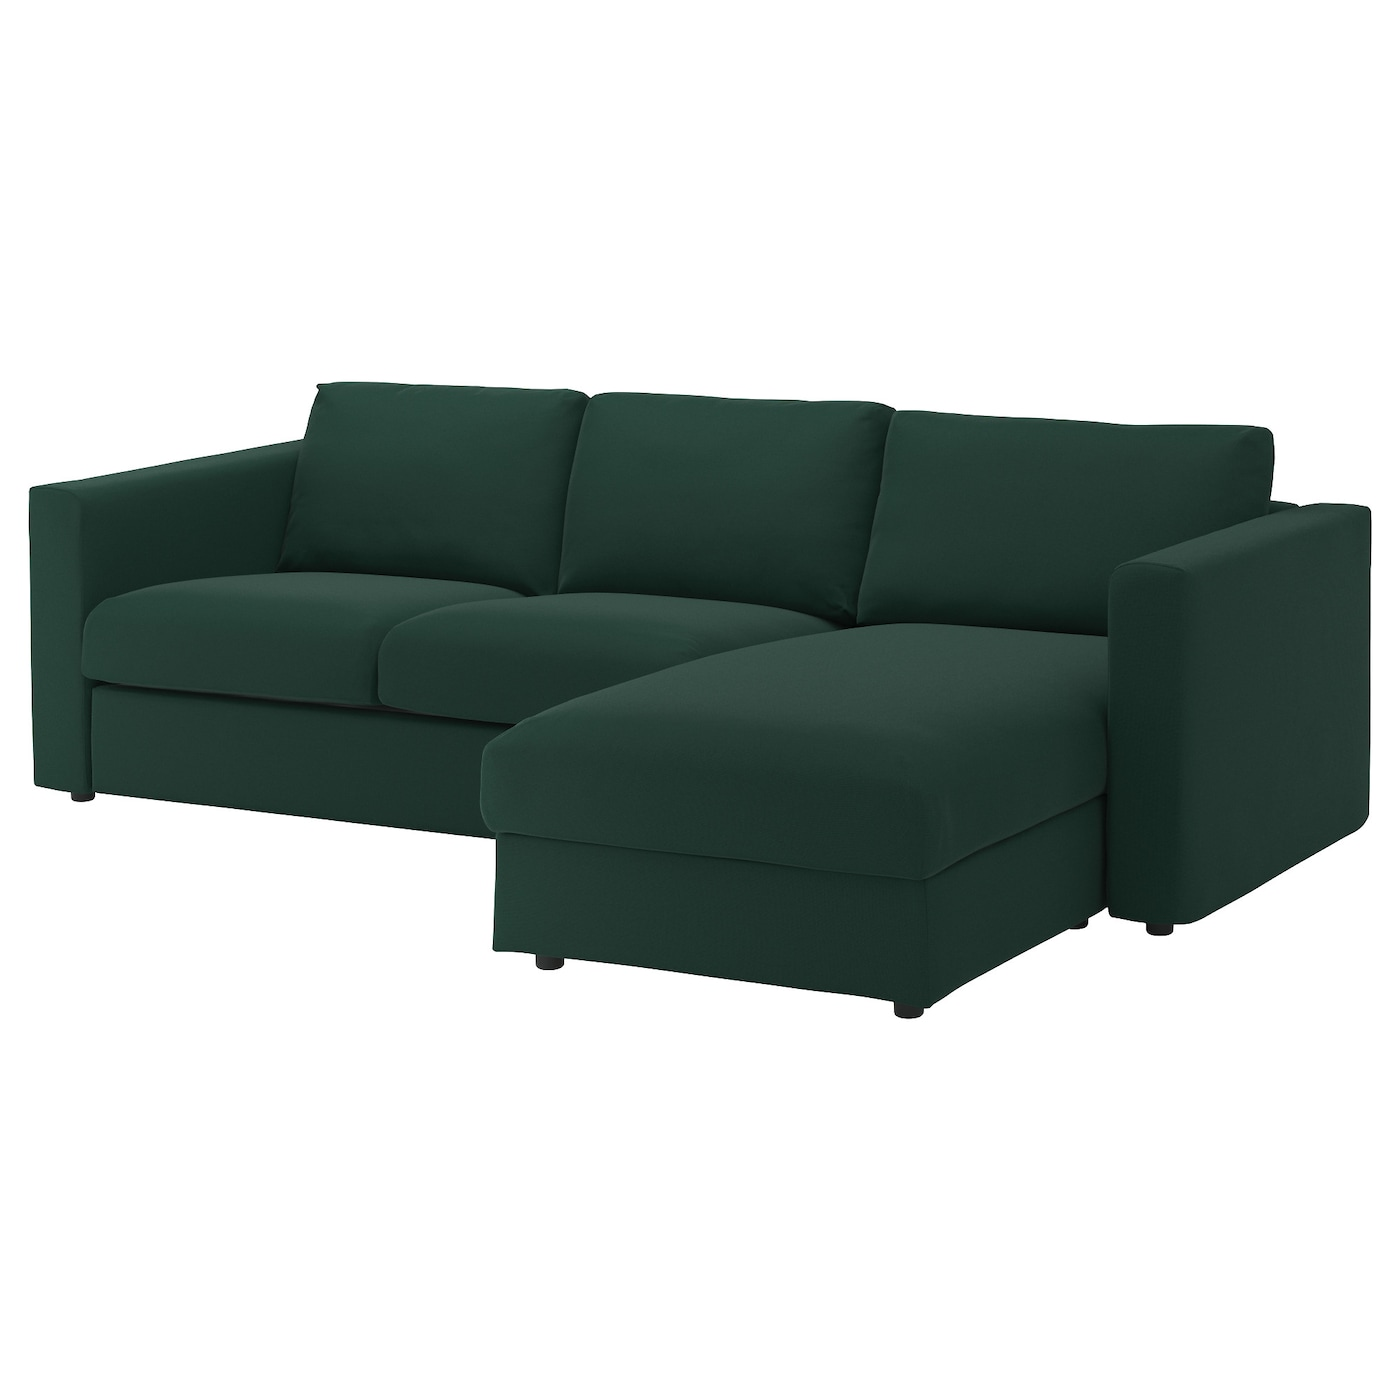 IKEA VIMLE 3-seat sofa The cover is easy to keep clean since it is removable and machine washable.